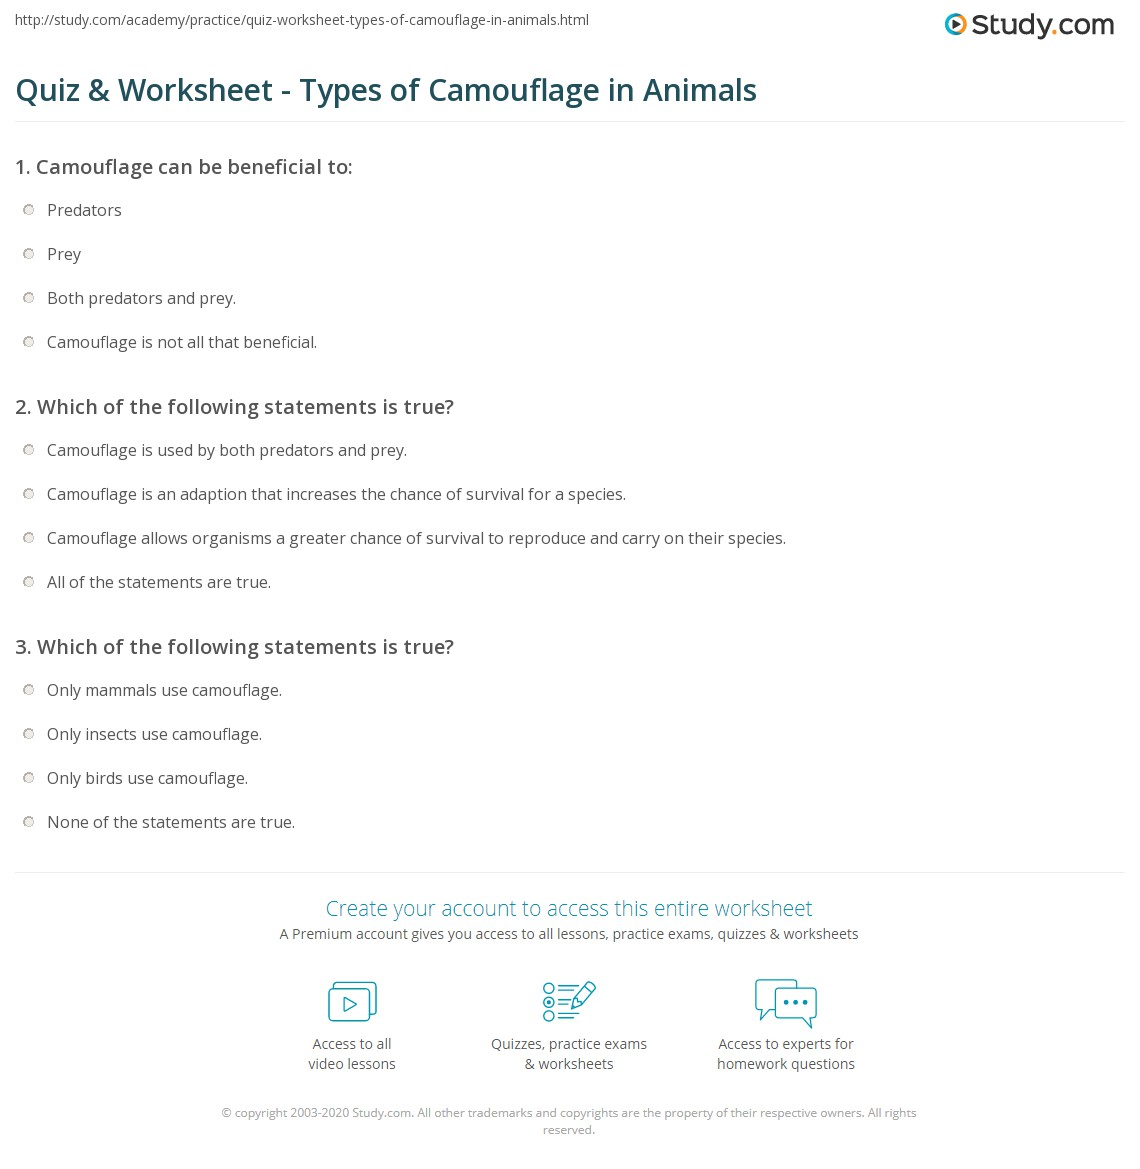 Workbooks predator and prey worksheets : Quiz & Worksheet - Types of Camouflage in Animals | Study.com